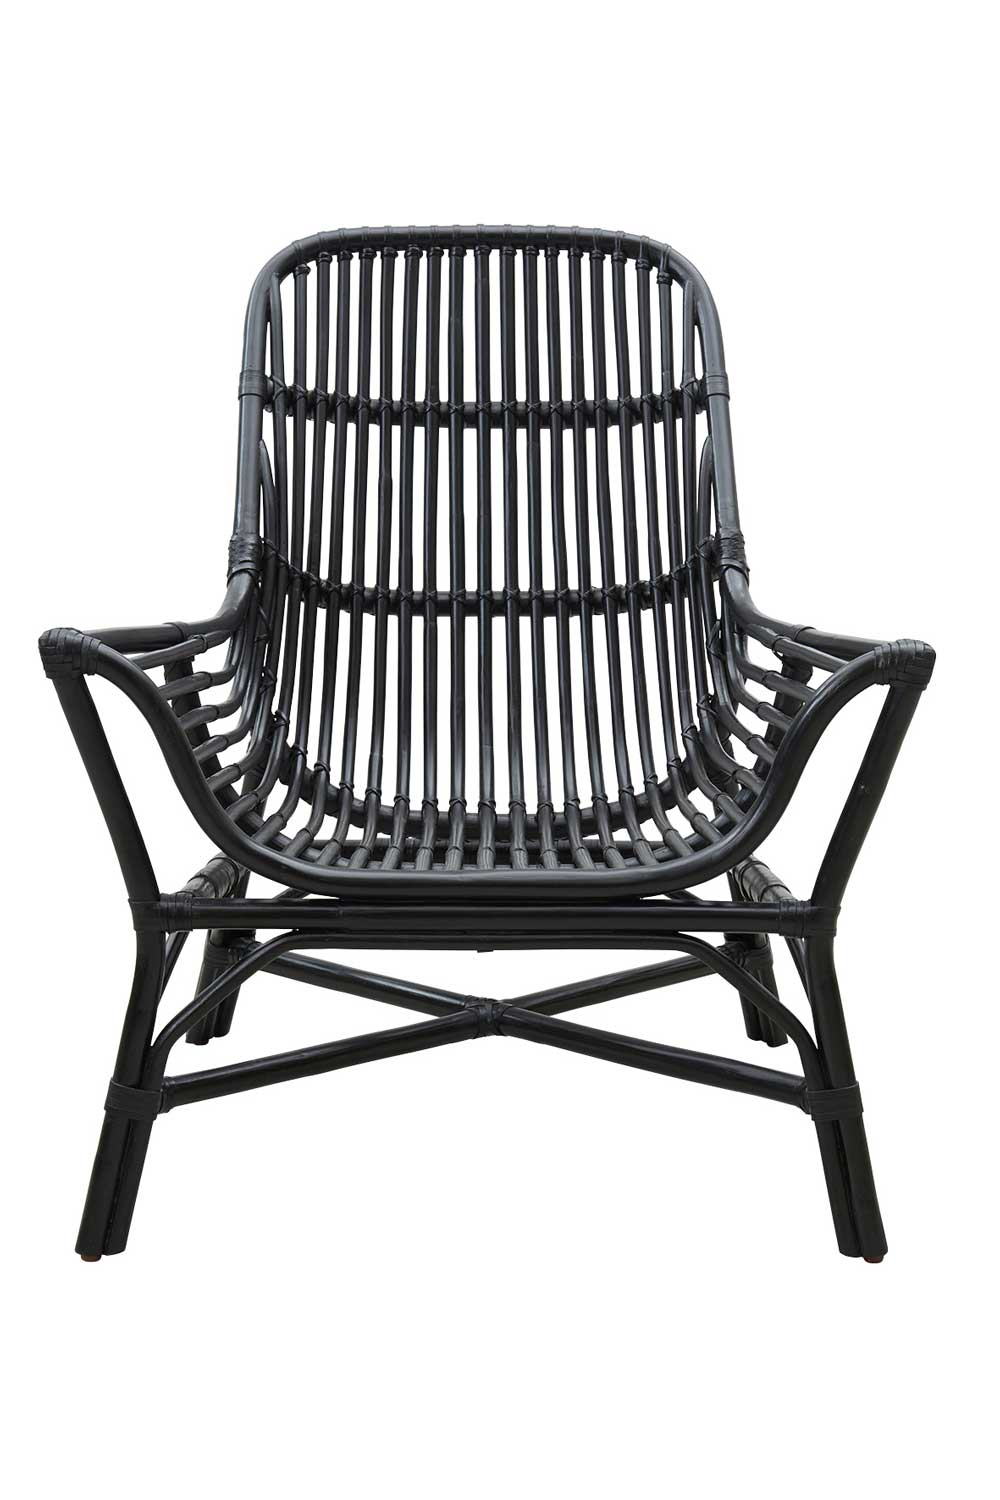 Image of   HOUSE DOCTOR Colony loungestol - sort rattan